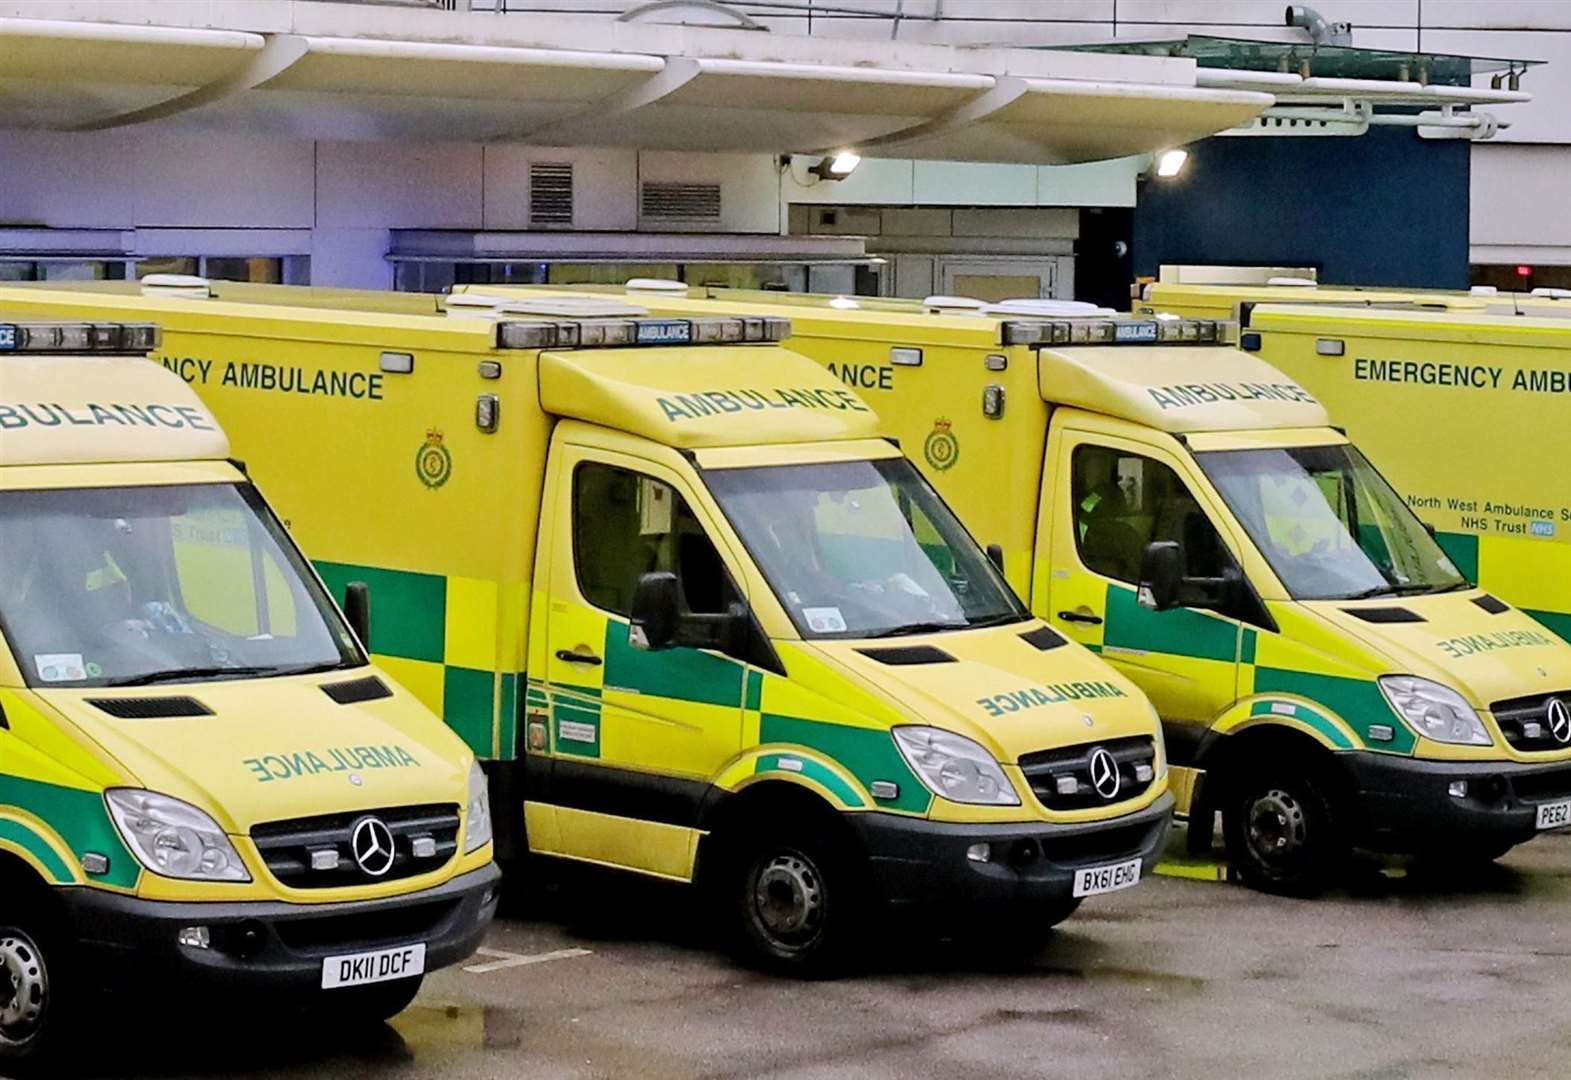 One patient every 56 seconds as 'winter crisis' looms